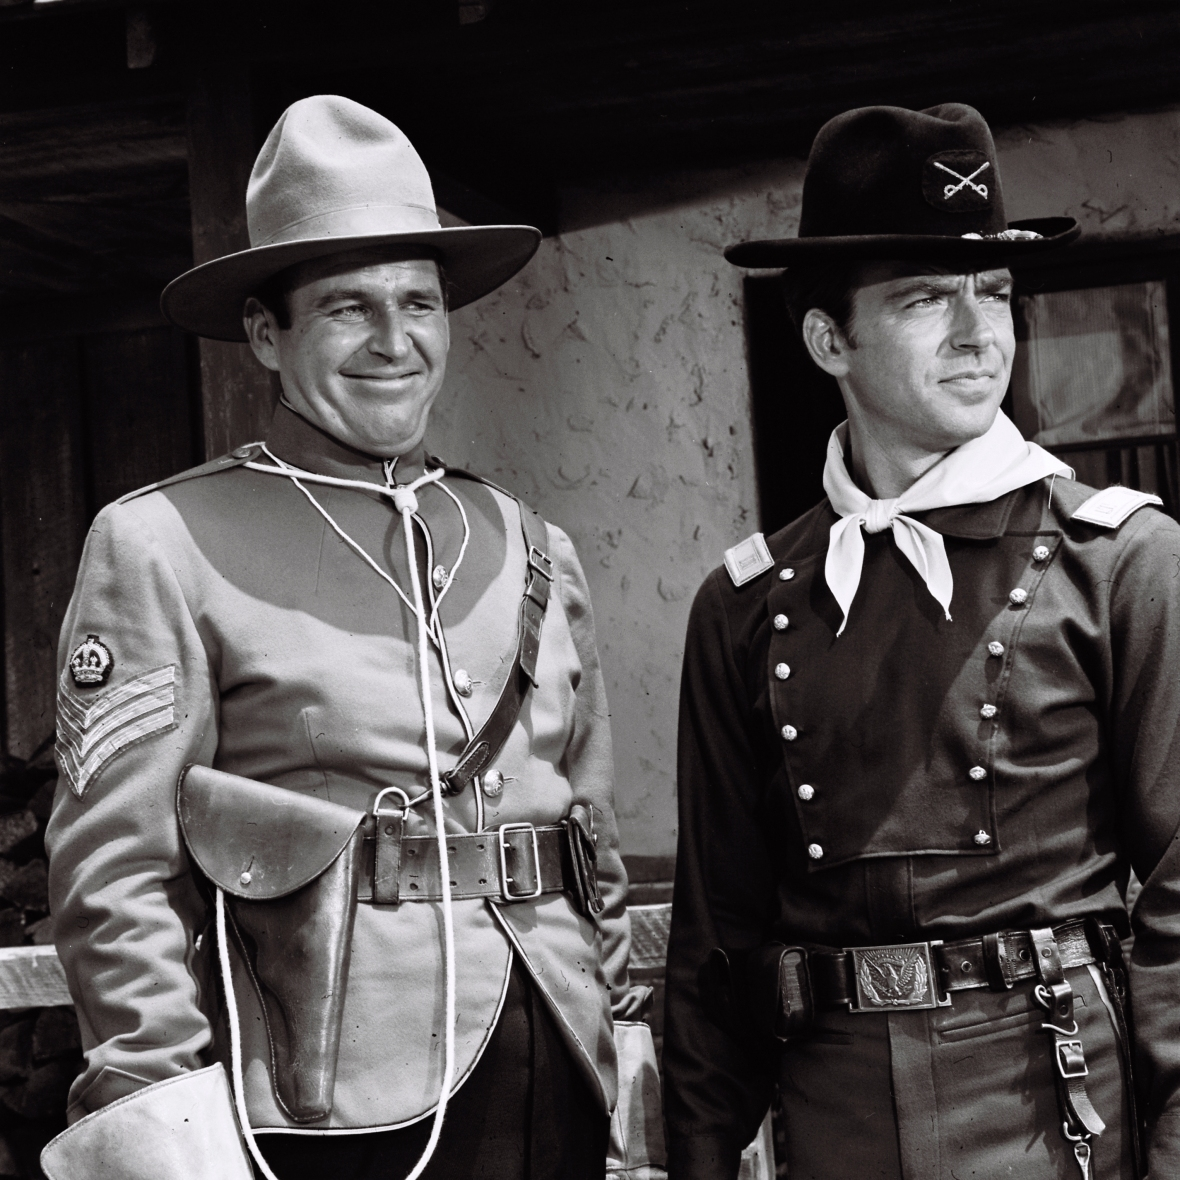 paul lynde - f troop